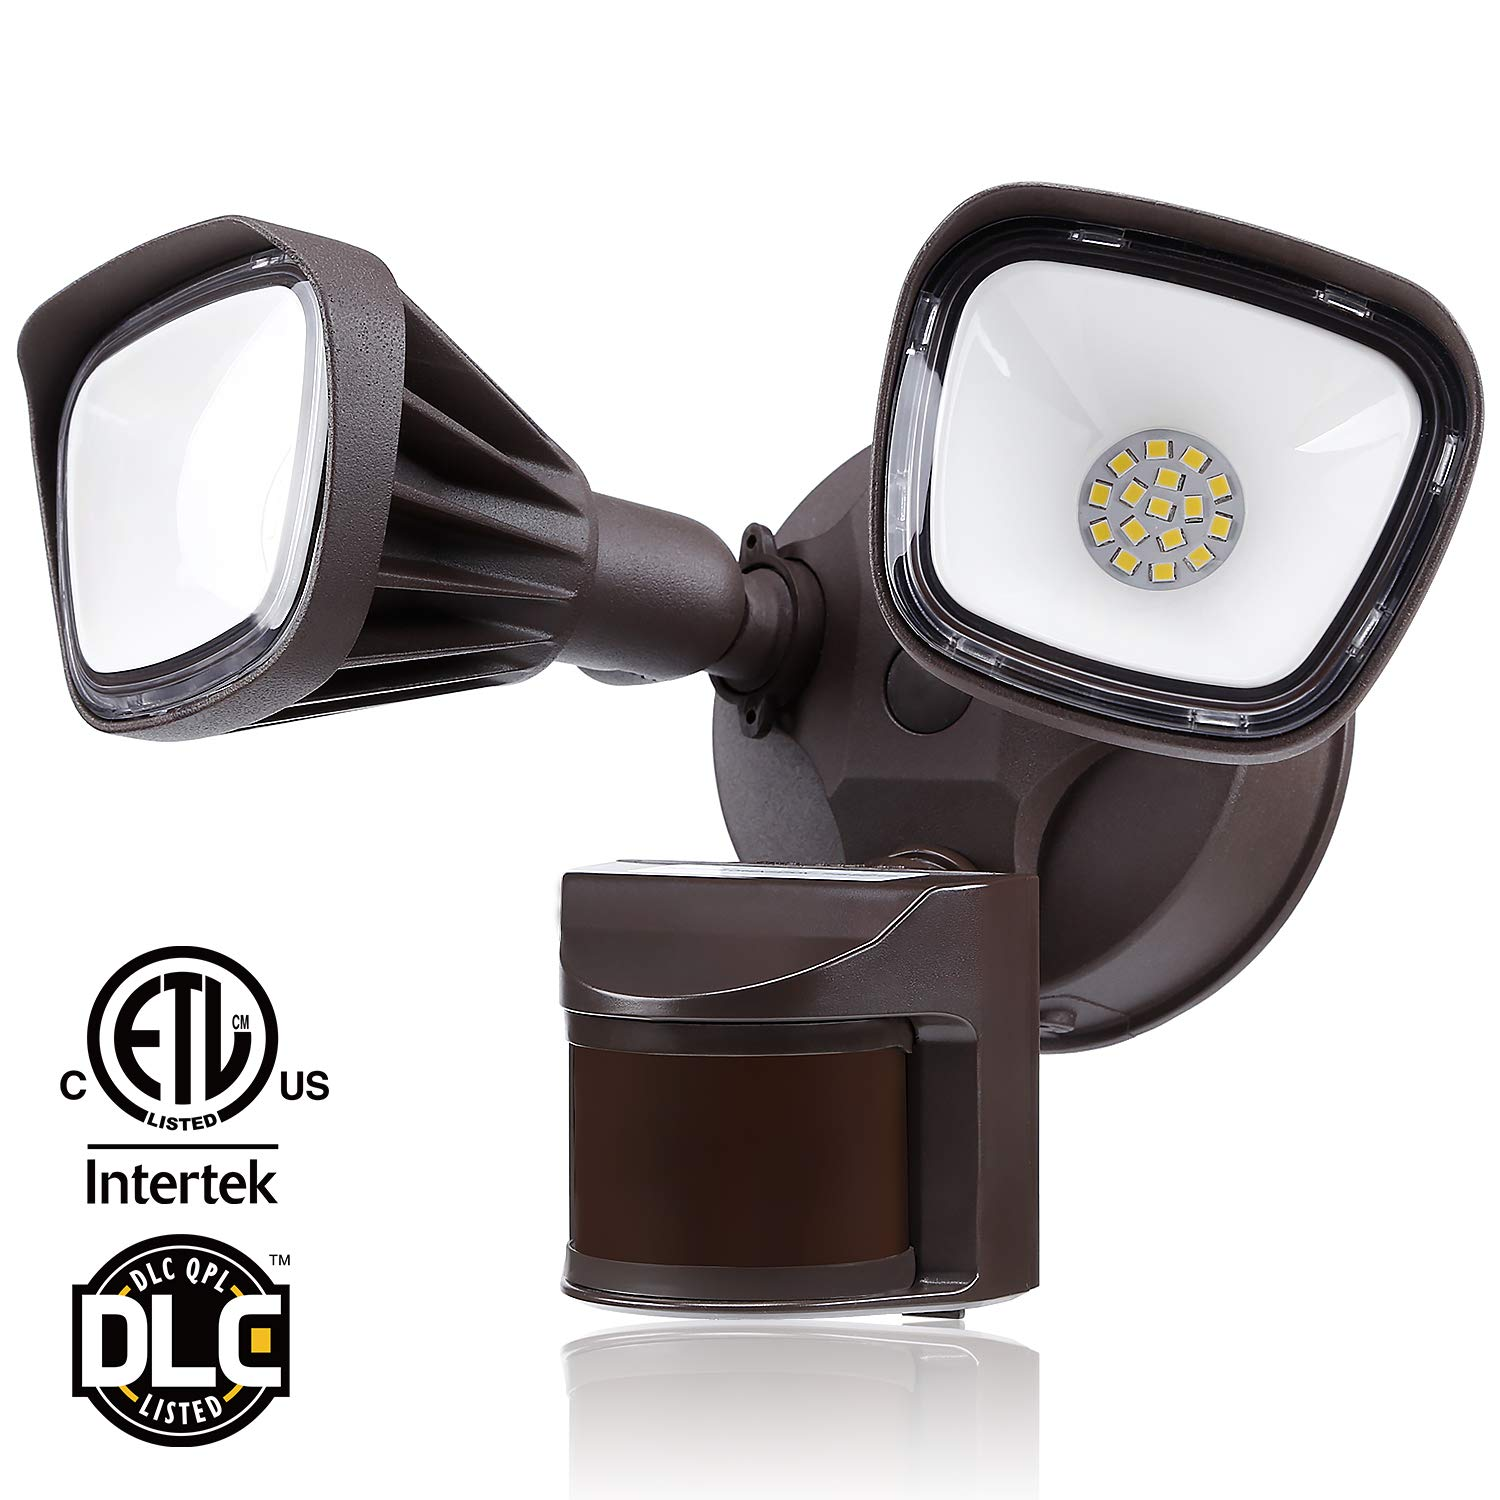 LEONLITE 25W Dual-Head Motion-Activated LED Outdoor Security Light, 150W Equiv. Waterproof Area Lighting, Photocell Included, DIM Mode Available, 3000K Warm White, for Yard, Garage, Porch, Bronze